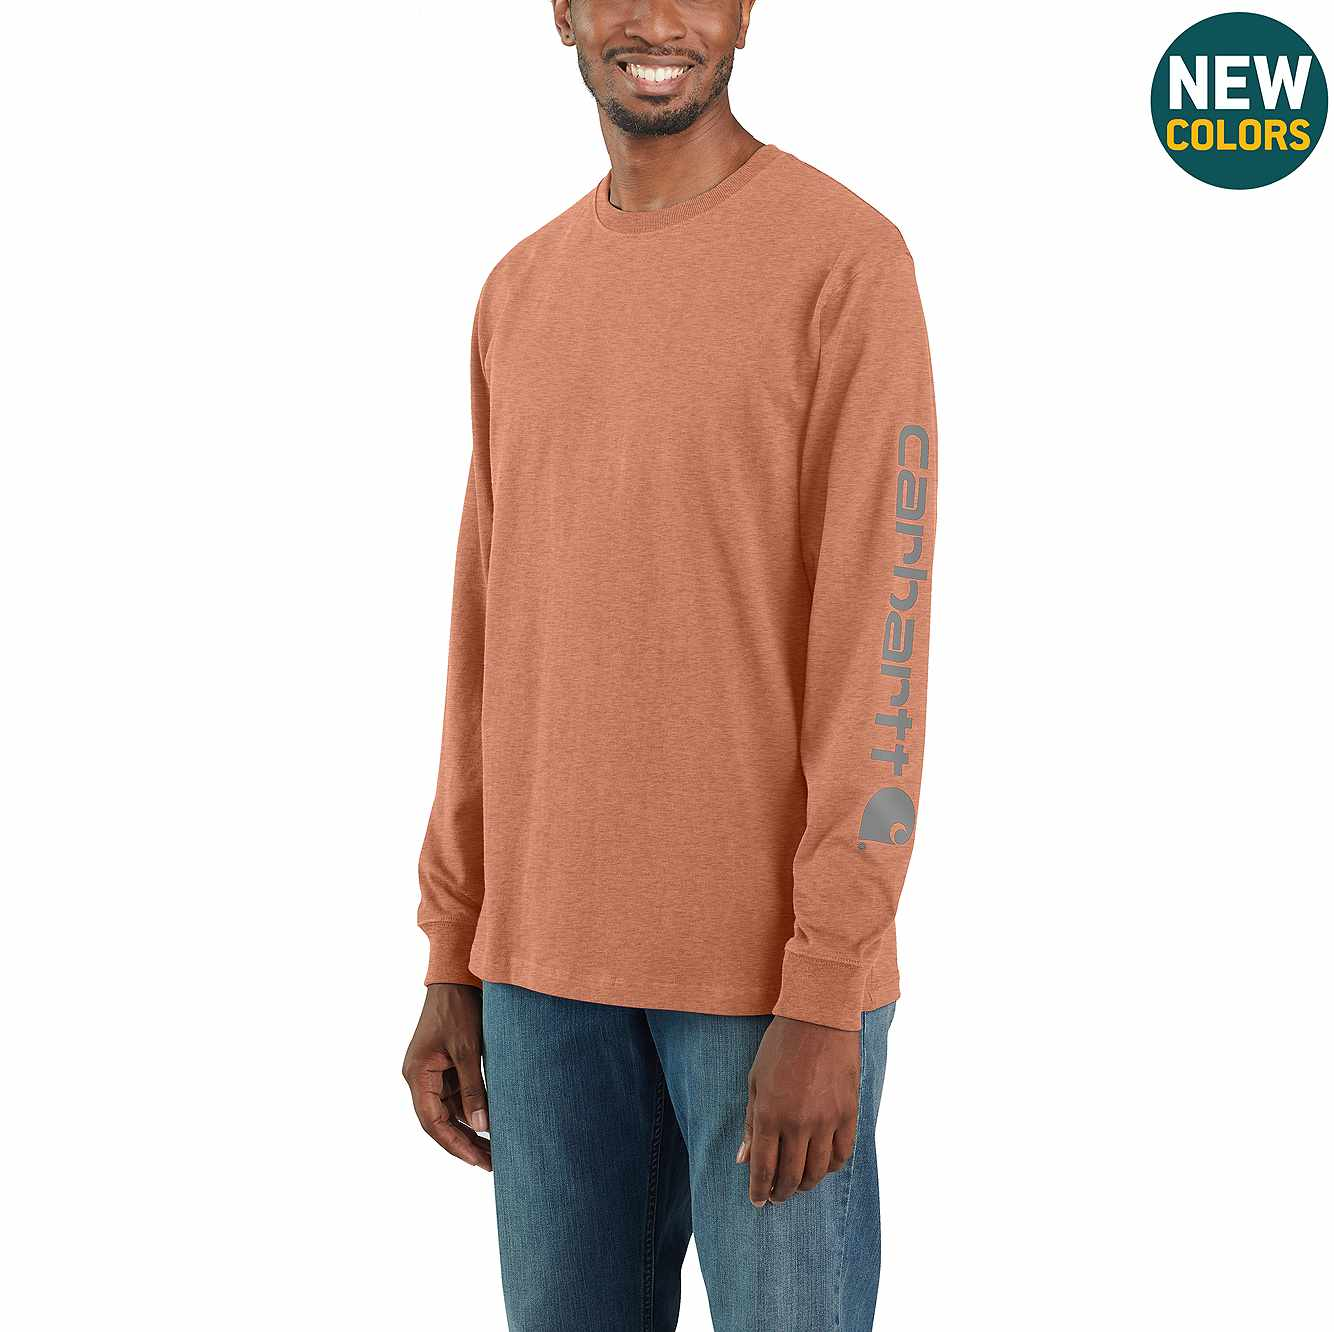 Picture of Loose Fit Heavyweight Long-Sleeve Logo Sleeve Graphic T-Shirt in Ginger Heather